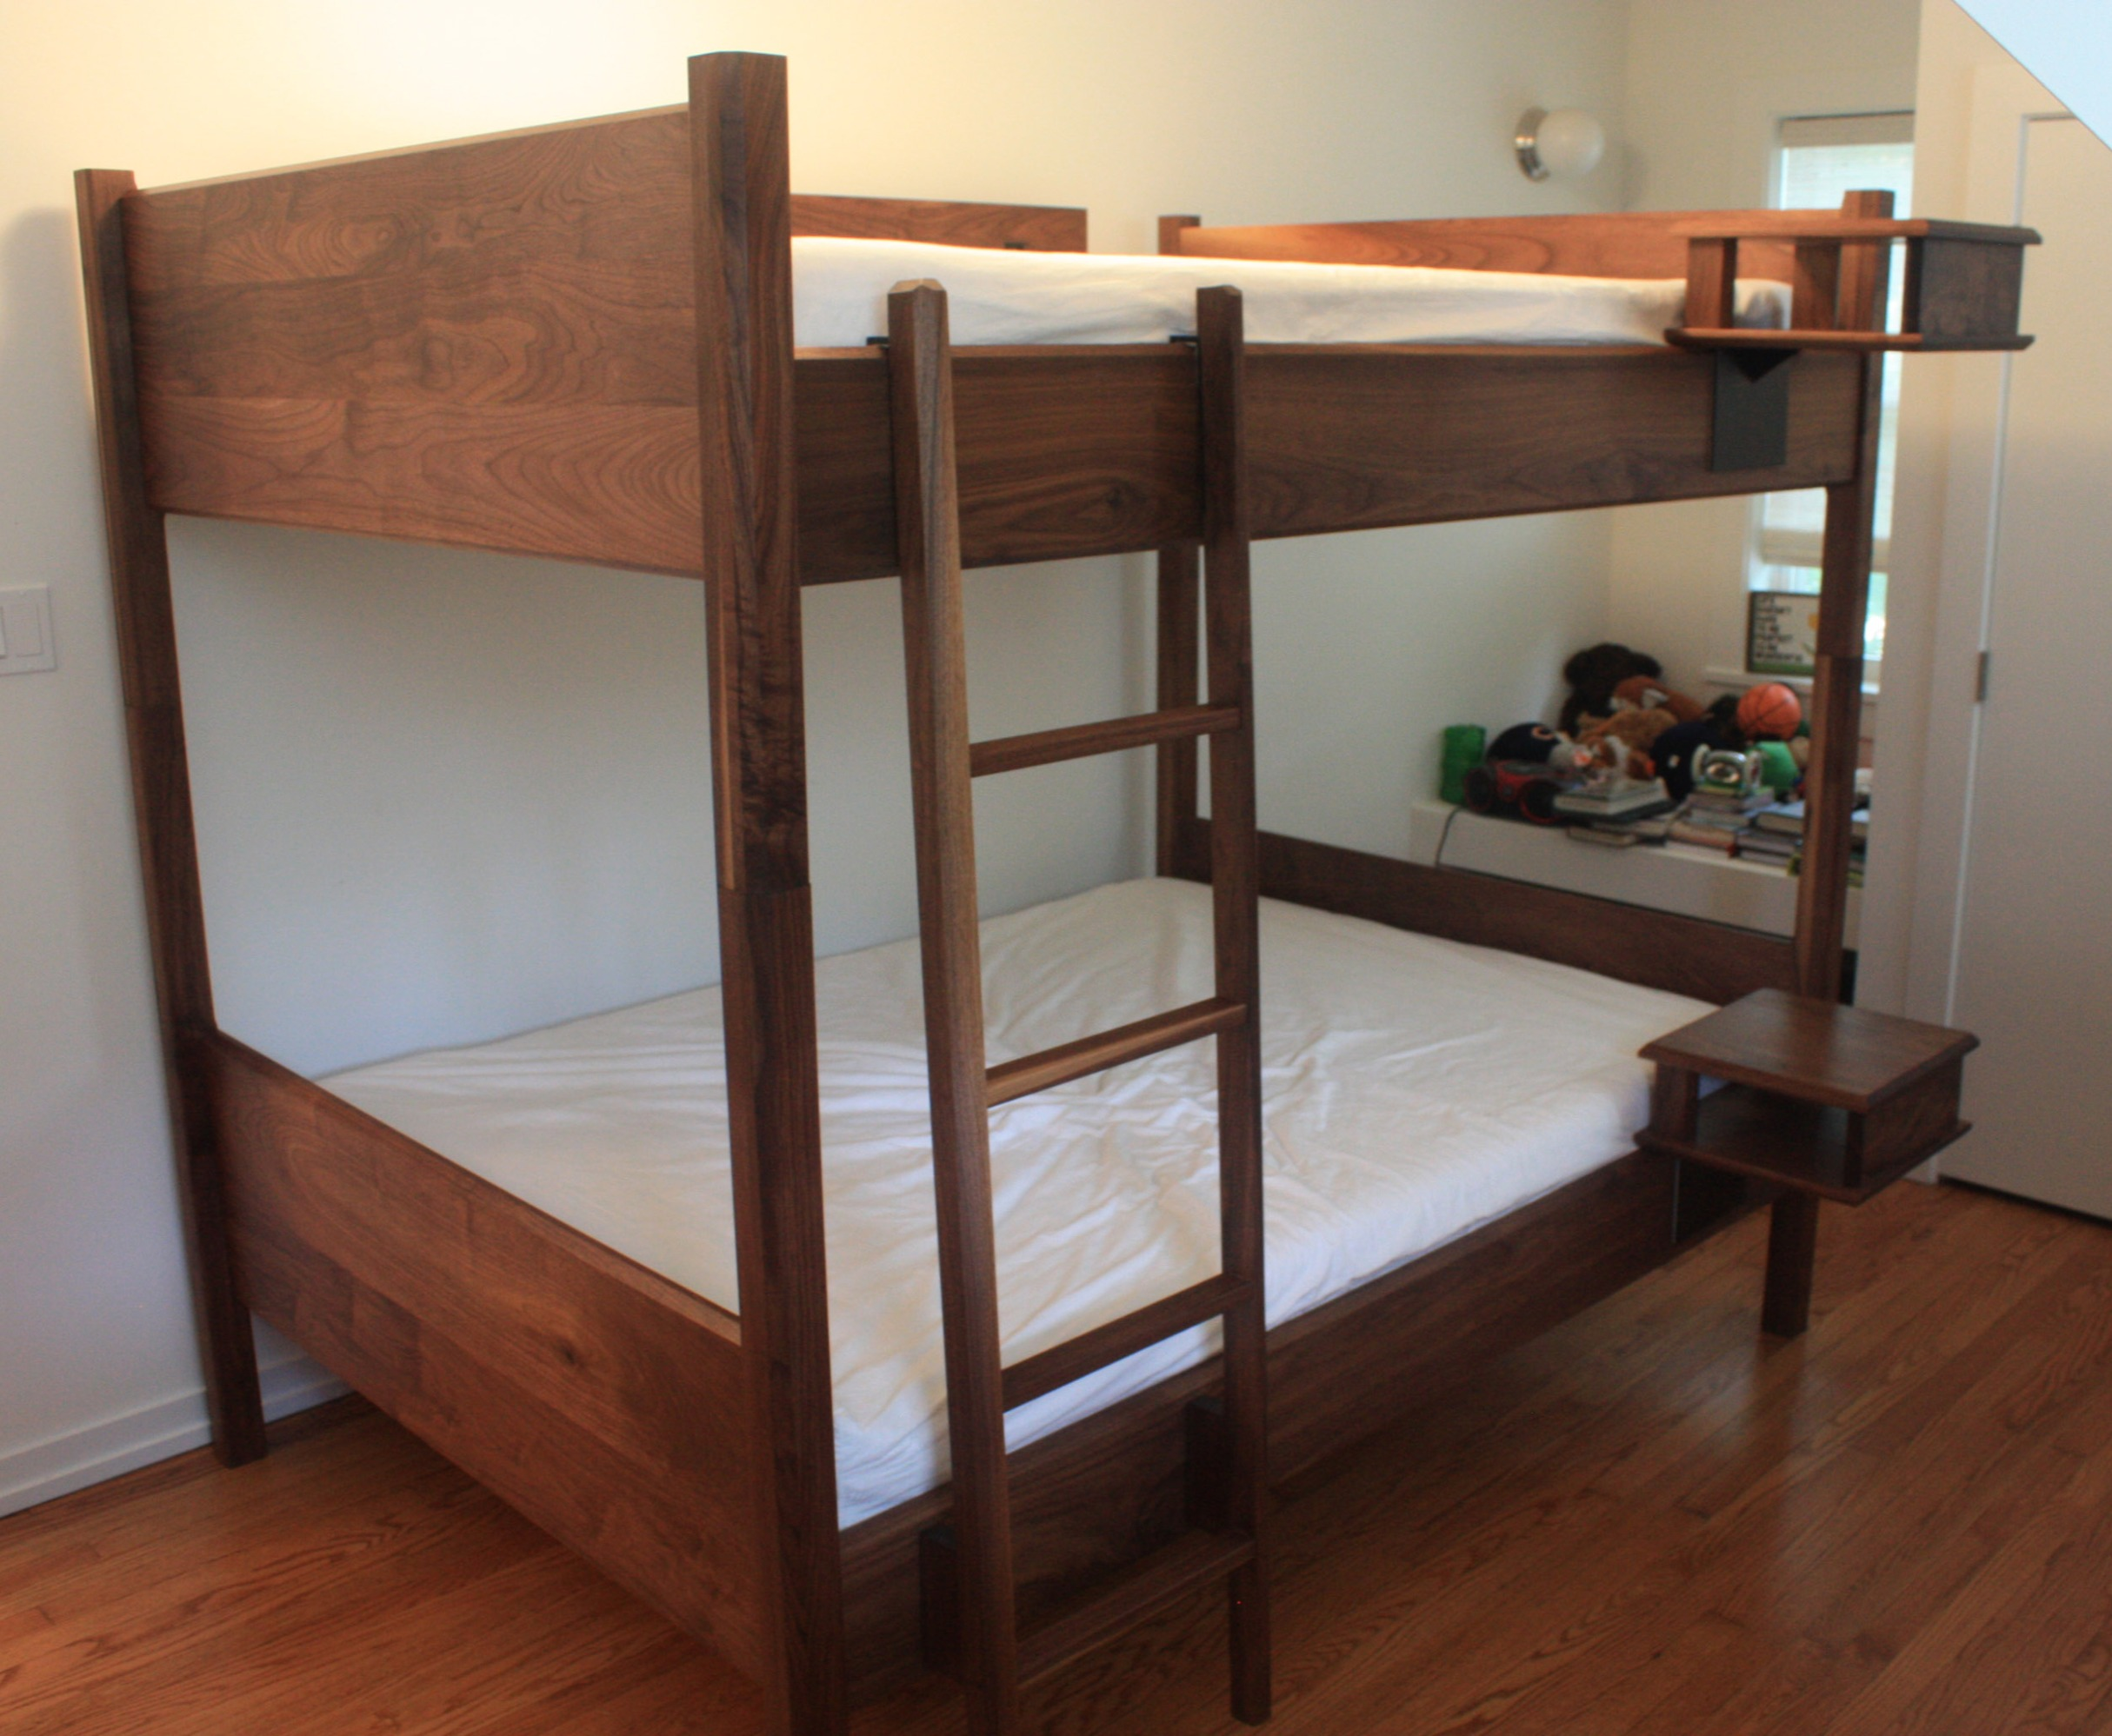 Brokenpress Full Size Bunkbeds in Solid Walnut